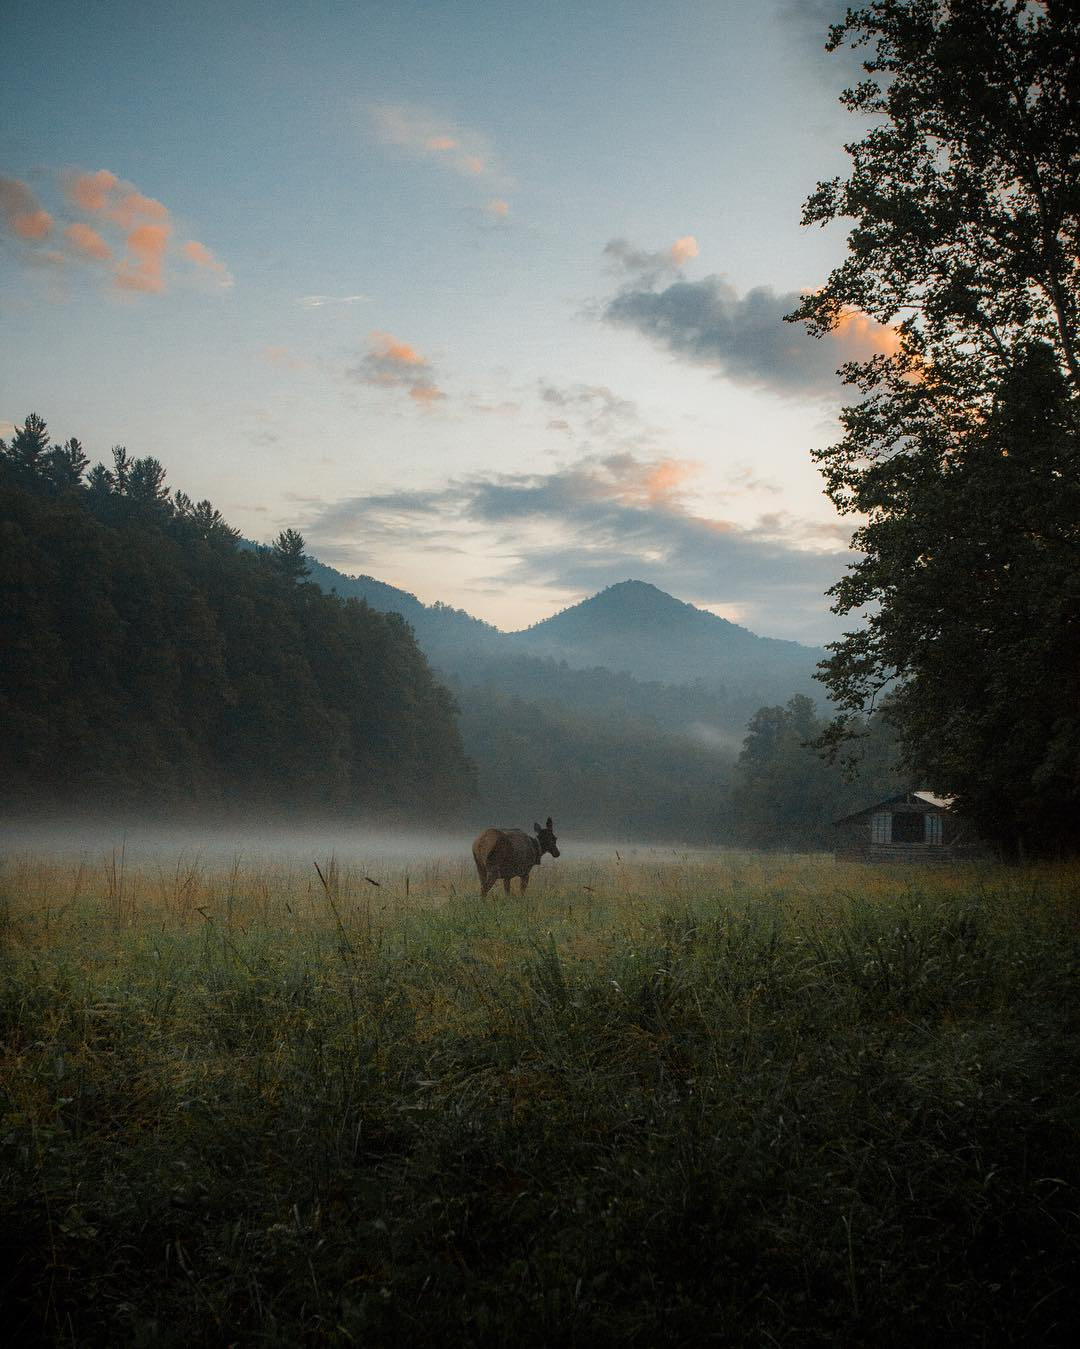 Top 7 National Parks in the USA - Great Smoky Mountains National Park